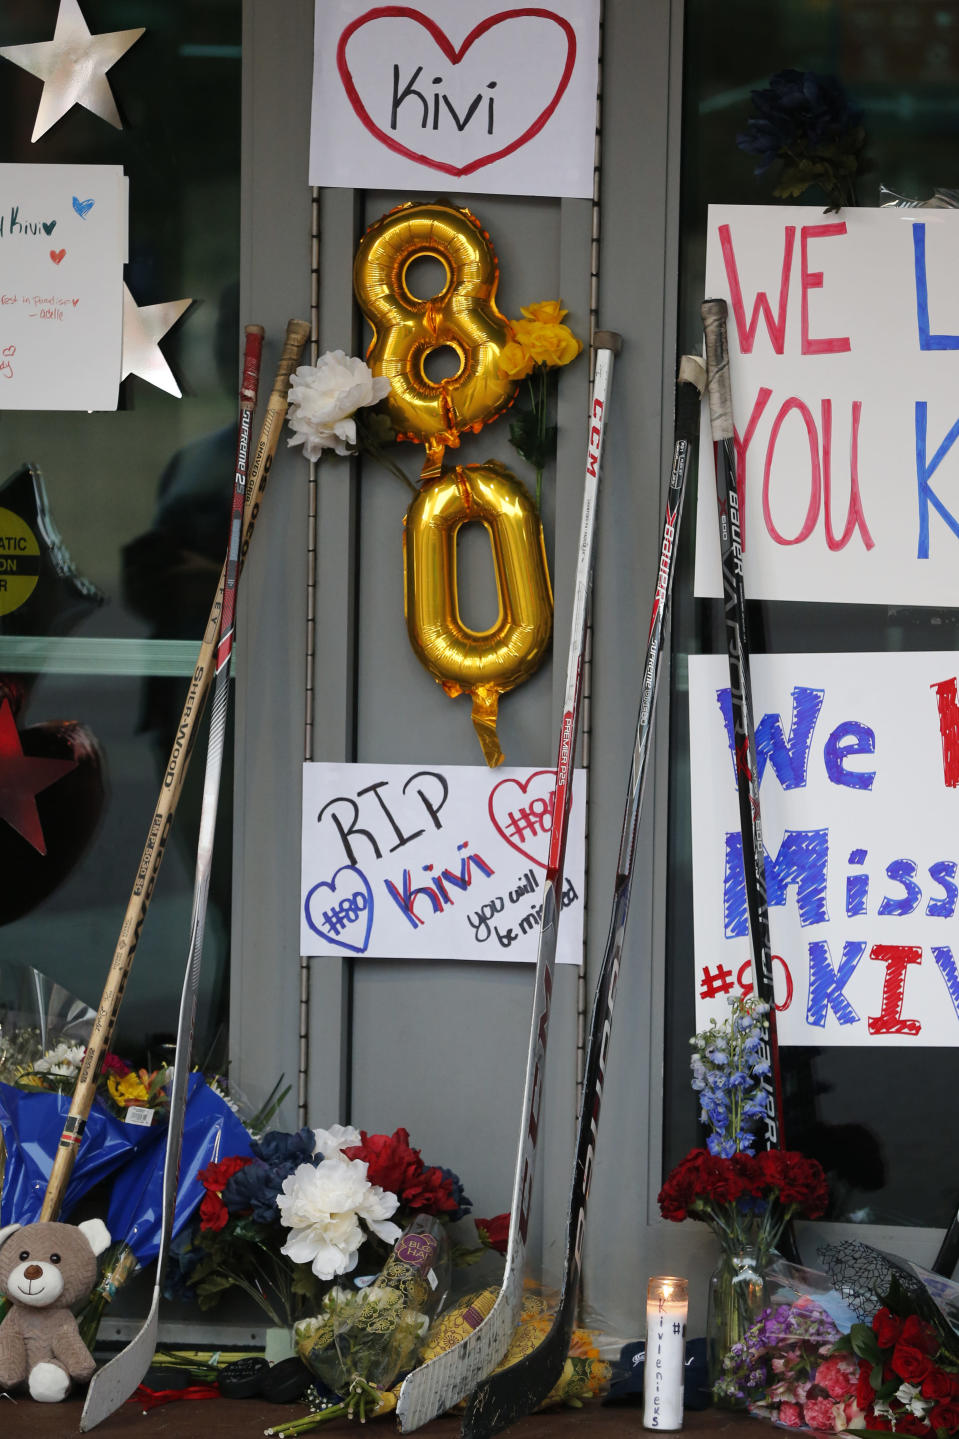 A makeshift memorial was erected in front of Nationwide Arena Monday, July 5, 2021, in Columbus, Ohio, to remember Columbus Blue Jackets goaltender Matiss Kivlenieks who died of chest trauma from an errant fireworks mortar blast in what authorities described Monday as a tragic accident on the Fourth of July. (AP Photo/Jay LaPrete)